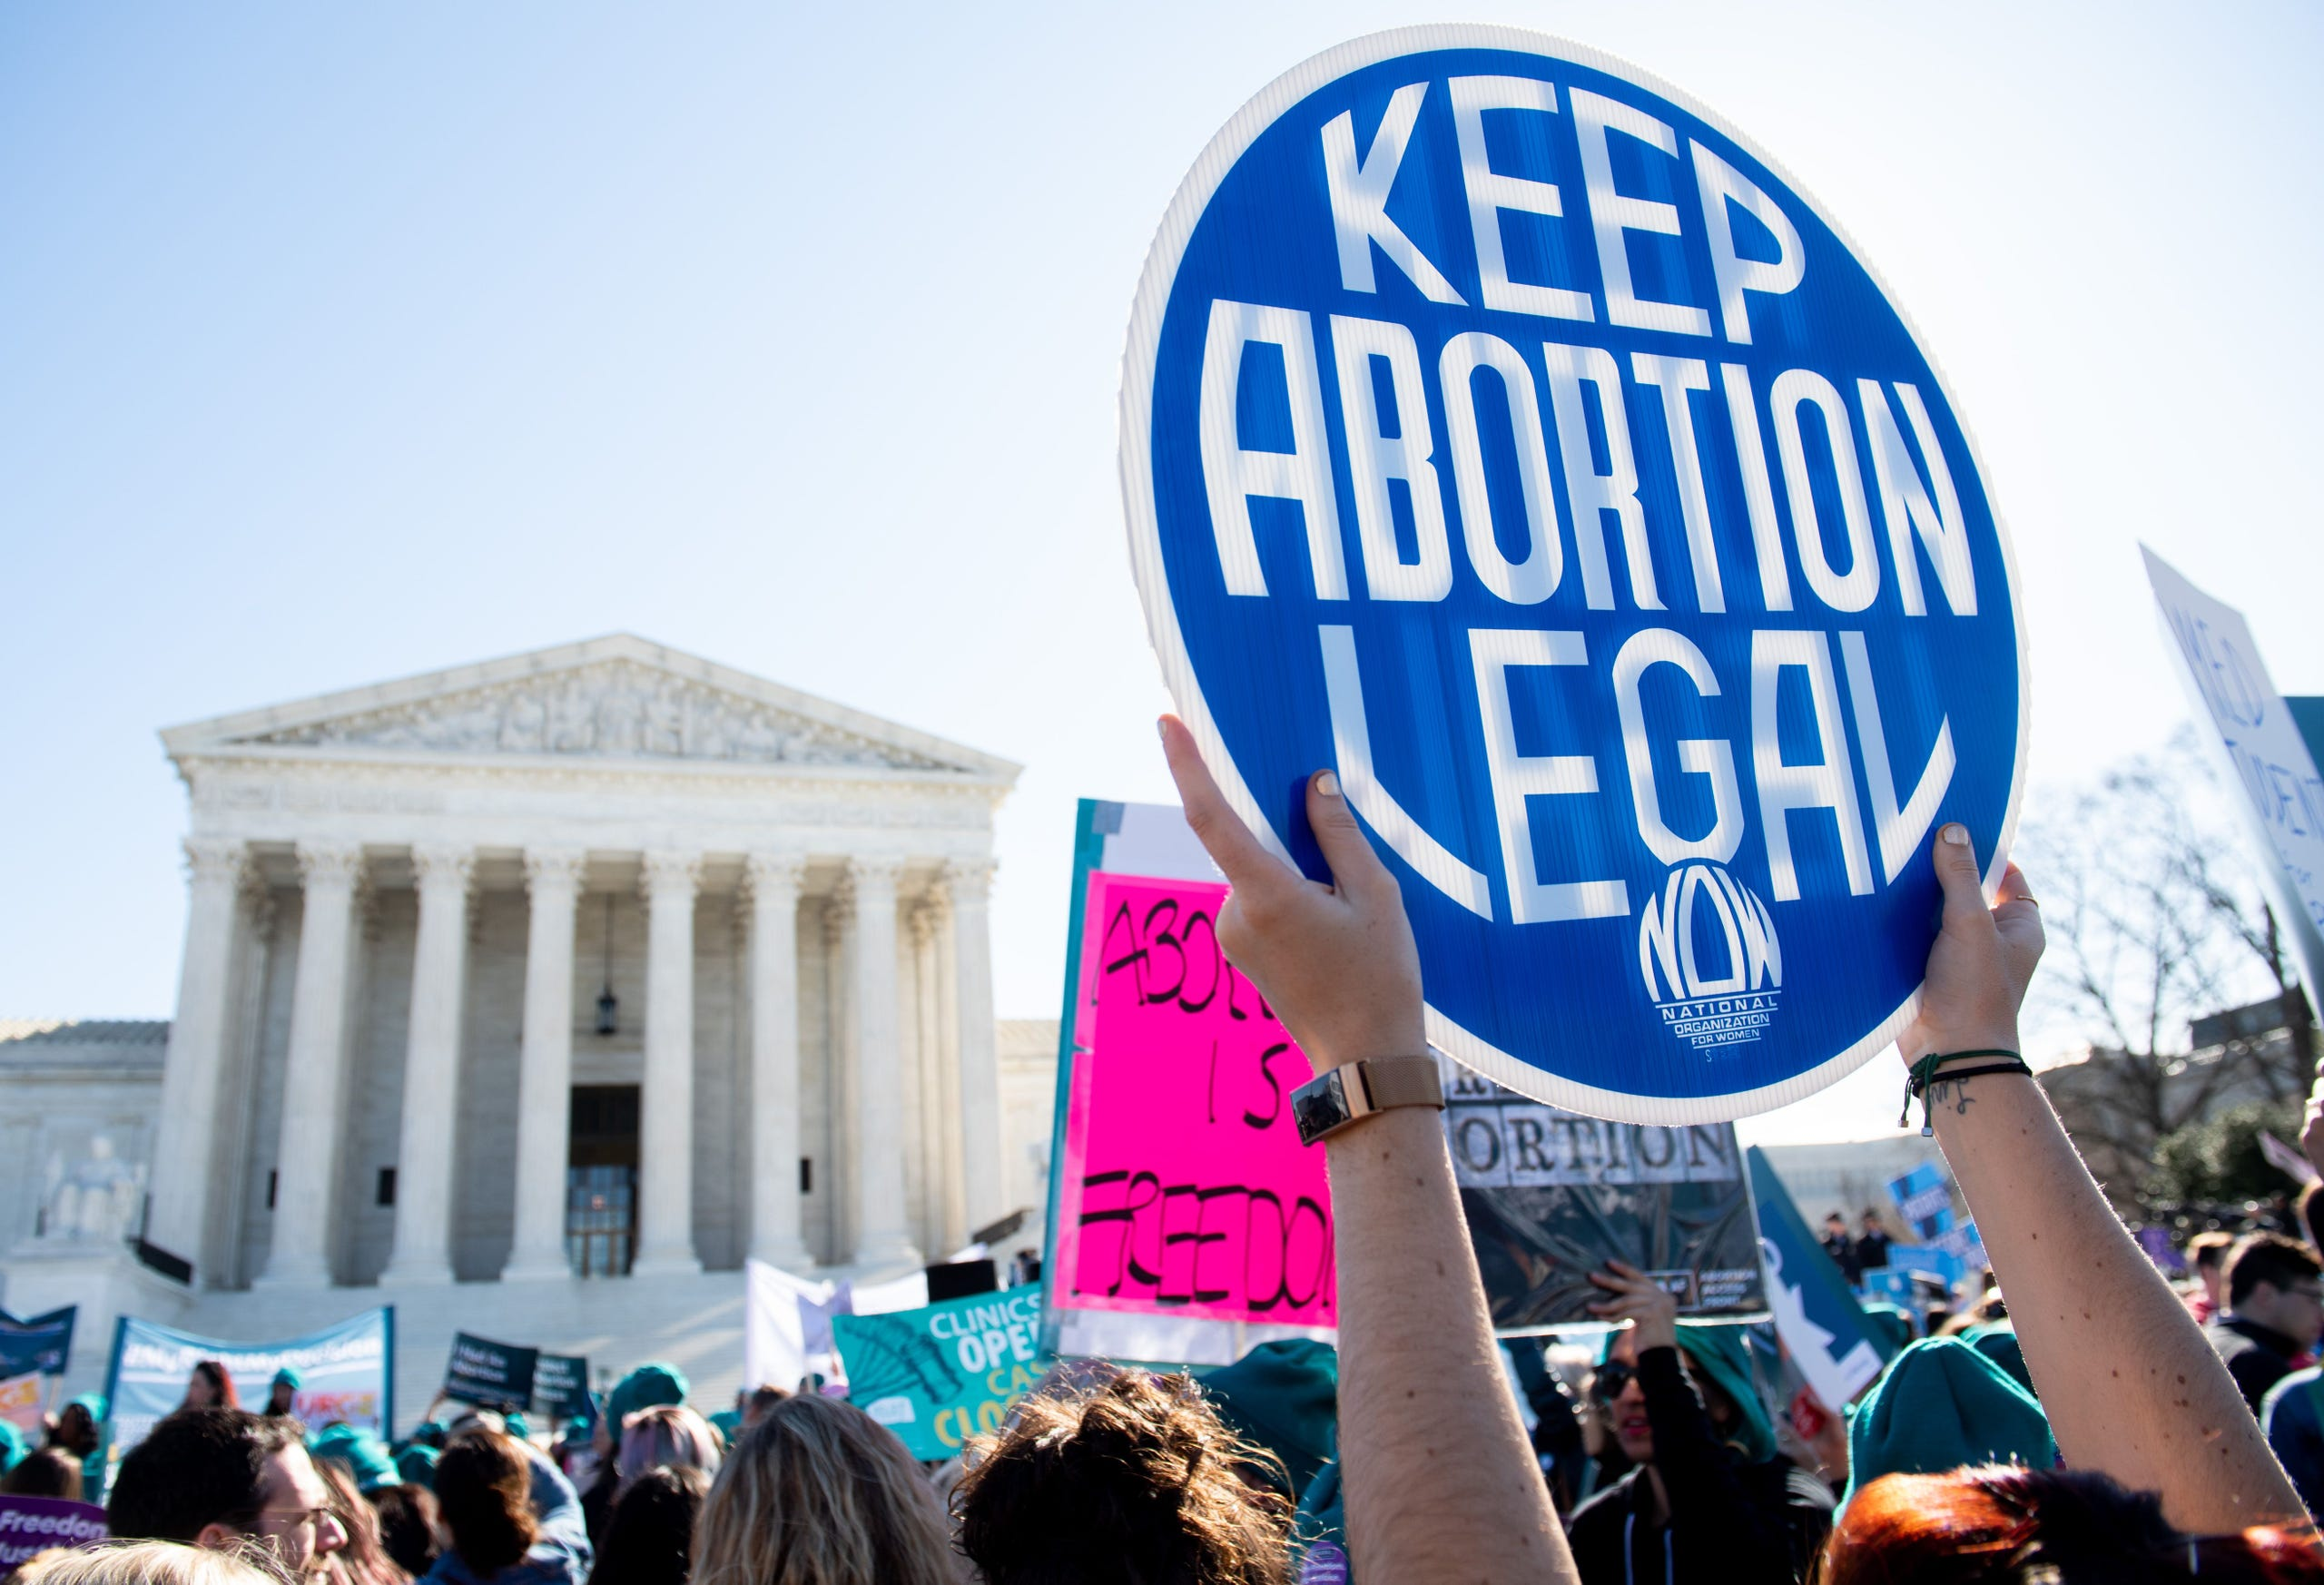 (FILES) In this file photo taken on March 04, 2020 pro-choice activists supporting legal access to abortion protest during a demonstration outside the US Supreme Court in Washington, DC, as the Court hears oral arguments regarding a Louisiana law about abortion access in the first major abortion case in years. - A US federal appeals court on March 31, 2020 ruled that Texas could temporarily suspend abortions as part of its response to the coronavirus crisis, overturning a ruling by a lower court the day before.  The governor of the conservative-leaning Lone Star State, Greg Abbott, had decreed that elective procedures should be delayed to ensure readiness to treat virus patients -- and to conserve protective gear for frontline workers. (Photo by SAUL LOEB / AFP) (Photo by SAUL LOEB/AFP via Getty Images) ORIG FILE ID: AFP_1QB28H